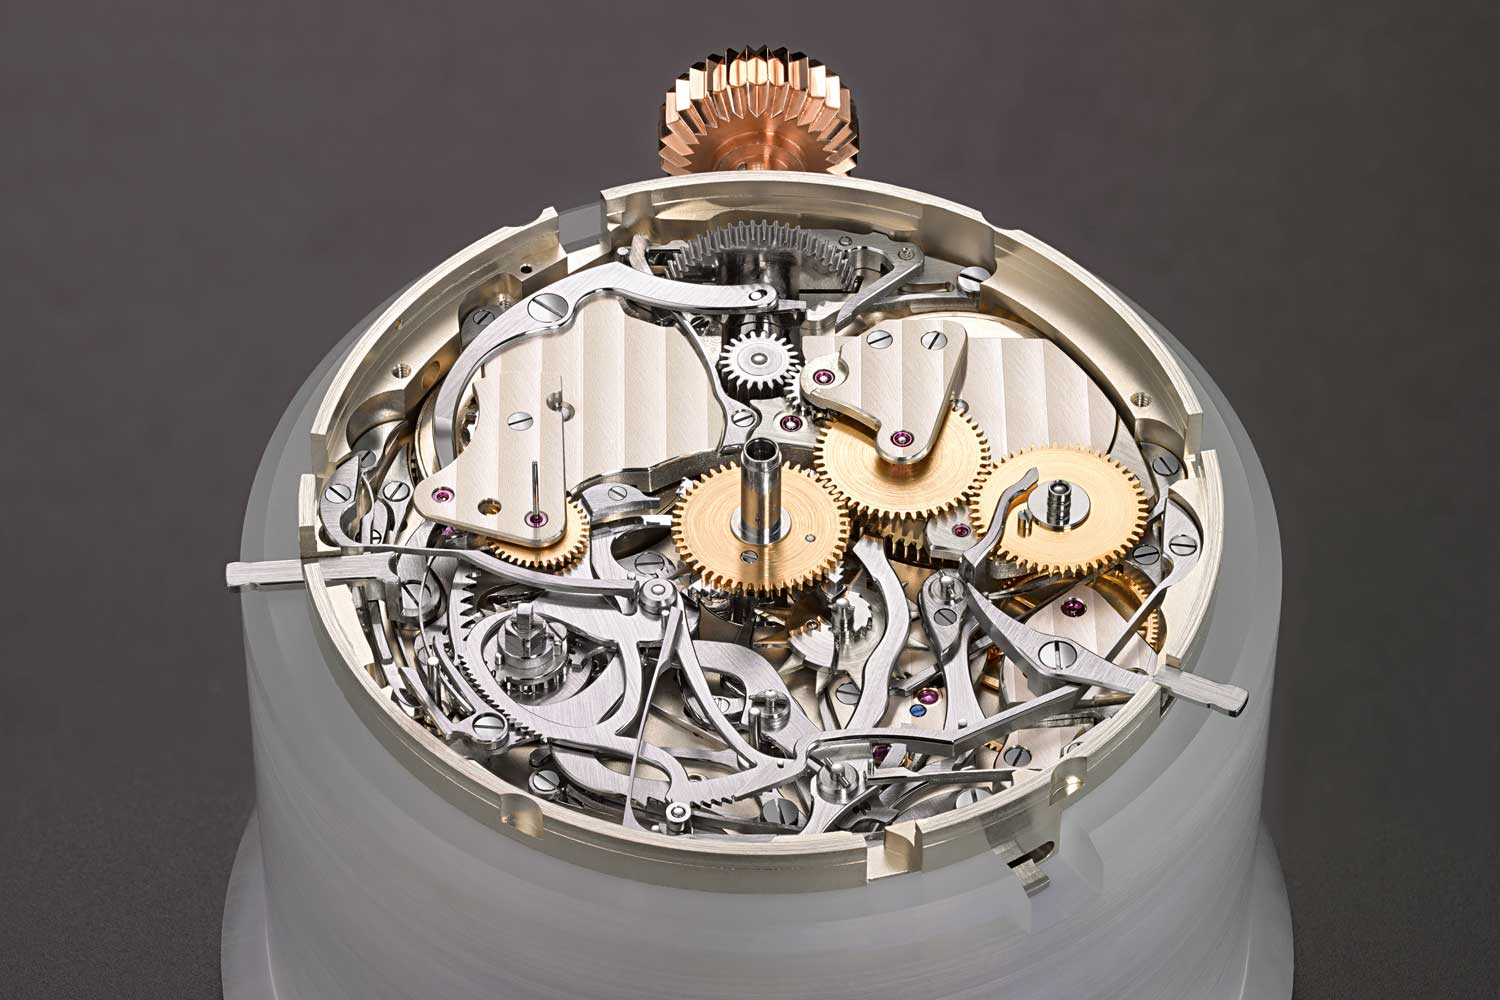 The movement of the Grand Complication showing the strike train